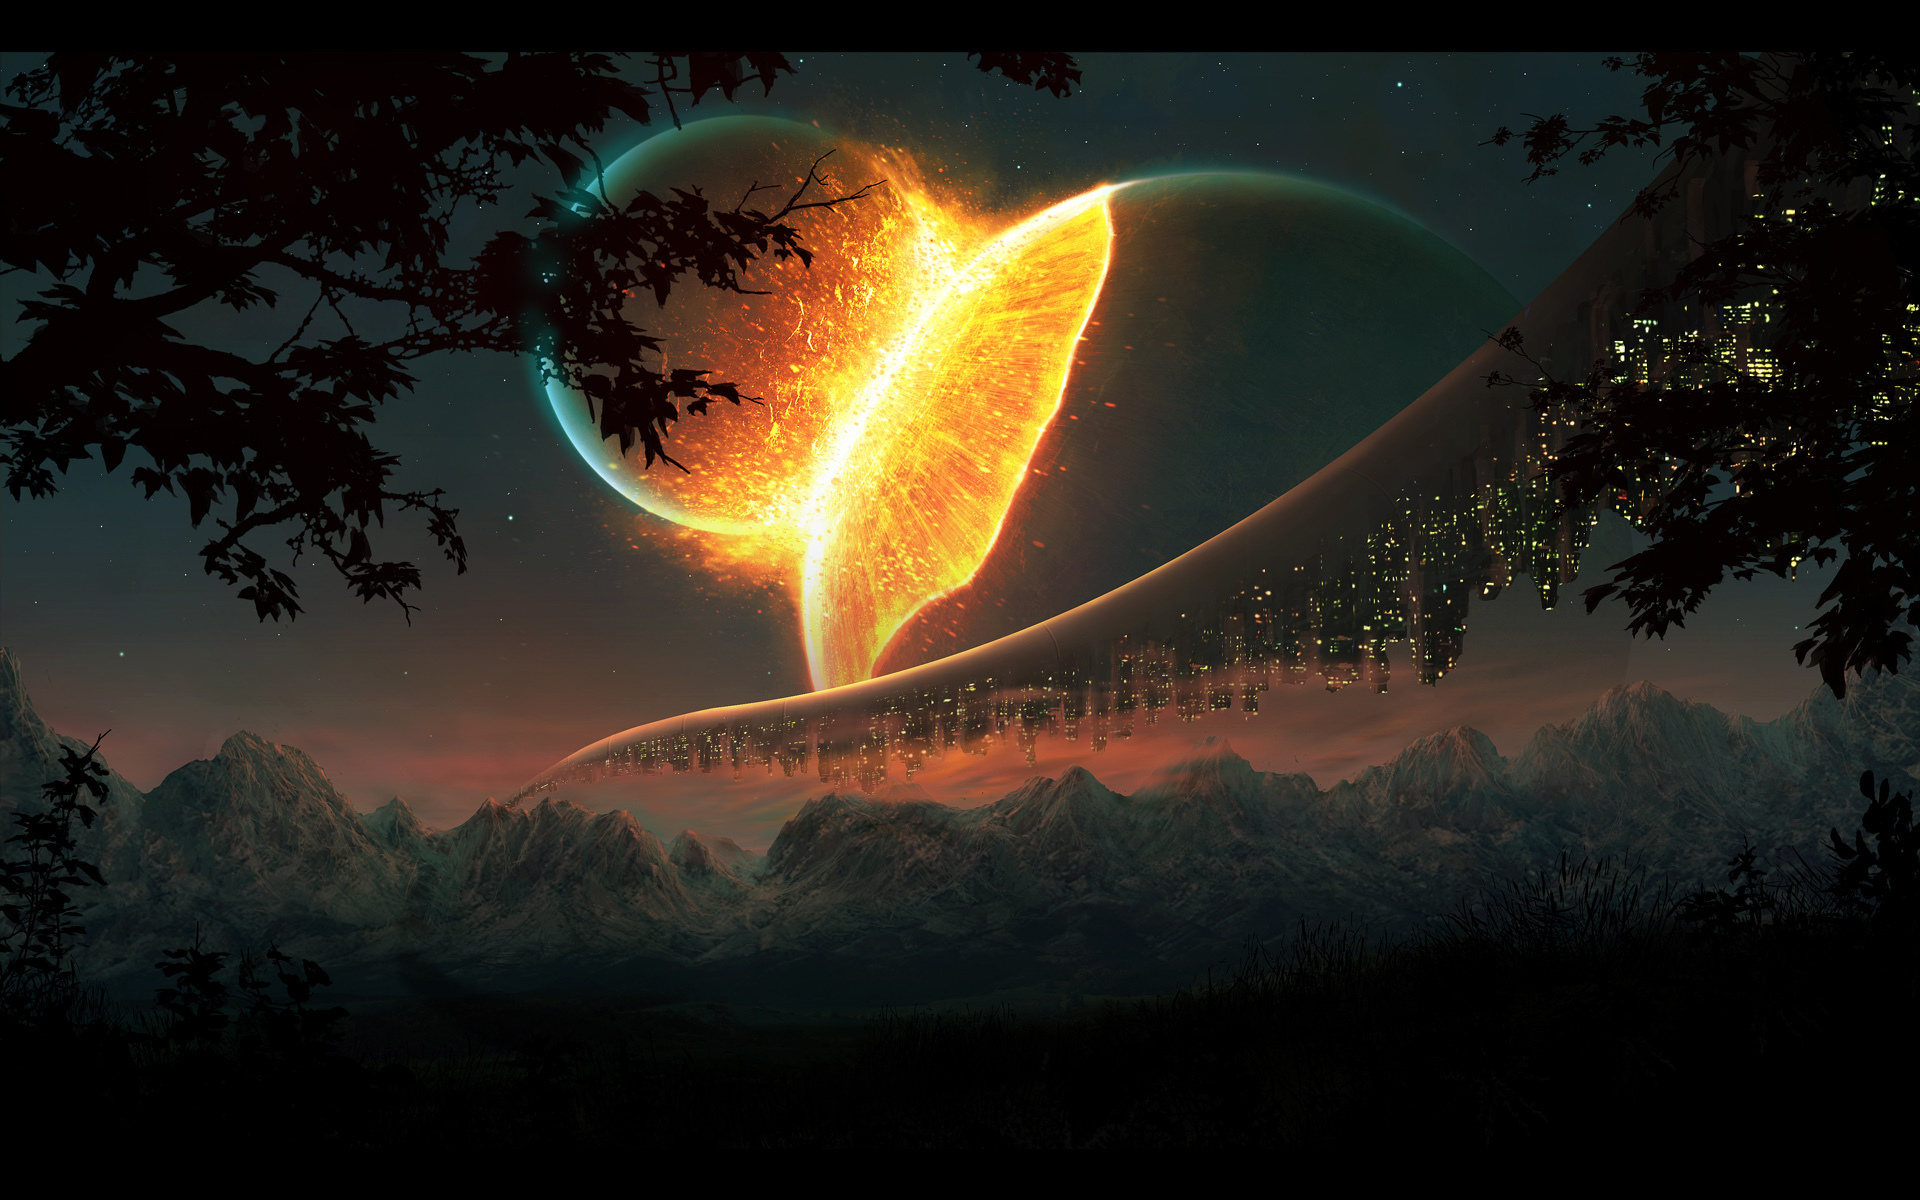 Name Cool image of synergy desktop wallpaper of planet explosion 1920x1200